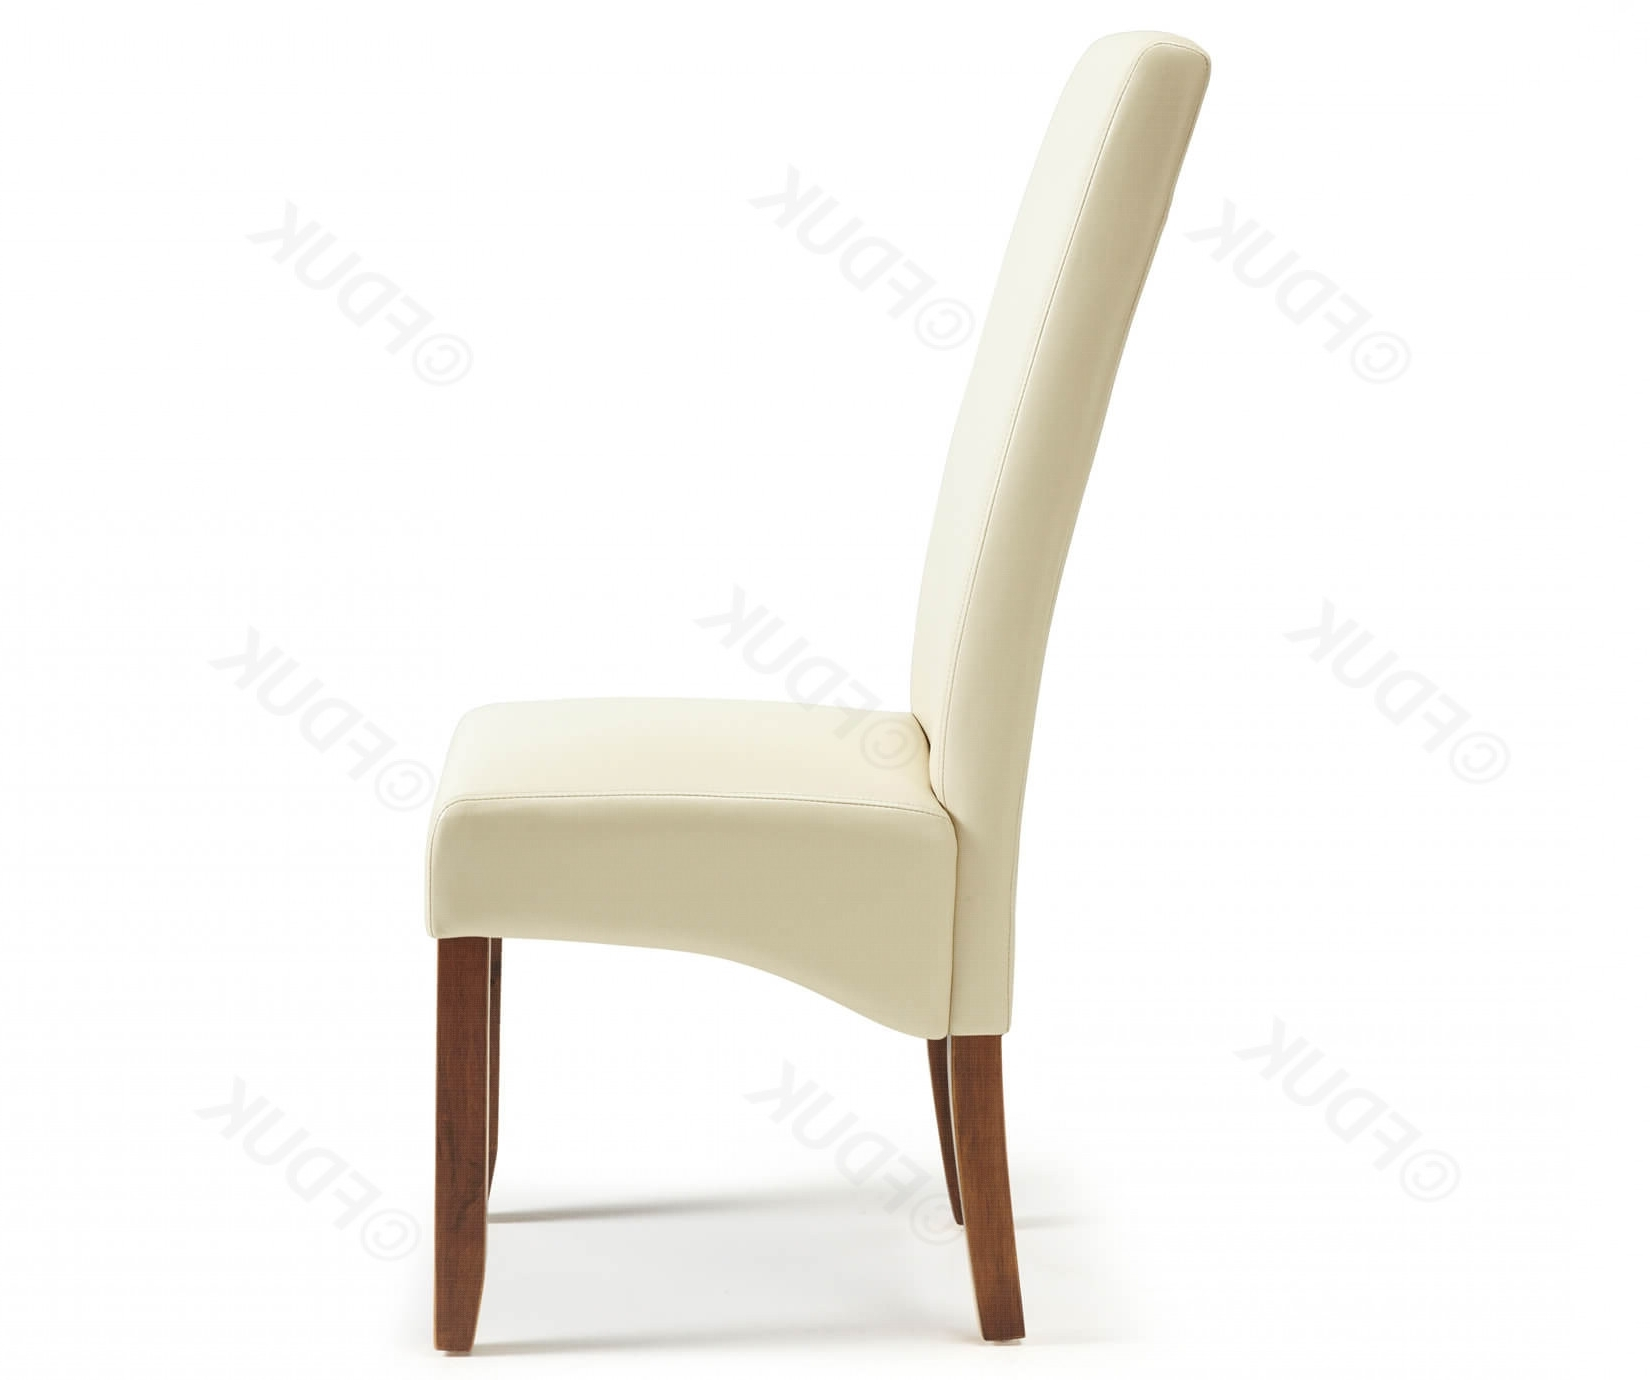 Merton Cream Faux Leather Dining Chairs With Intended For Cream Faux Leather Dining Chairs (Gallery 1 of 25)